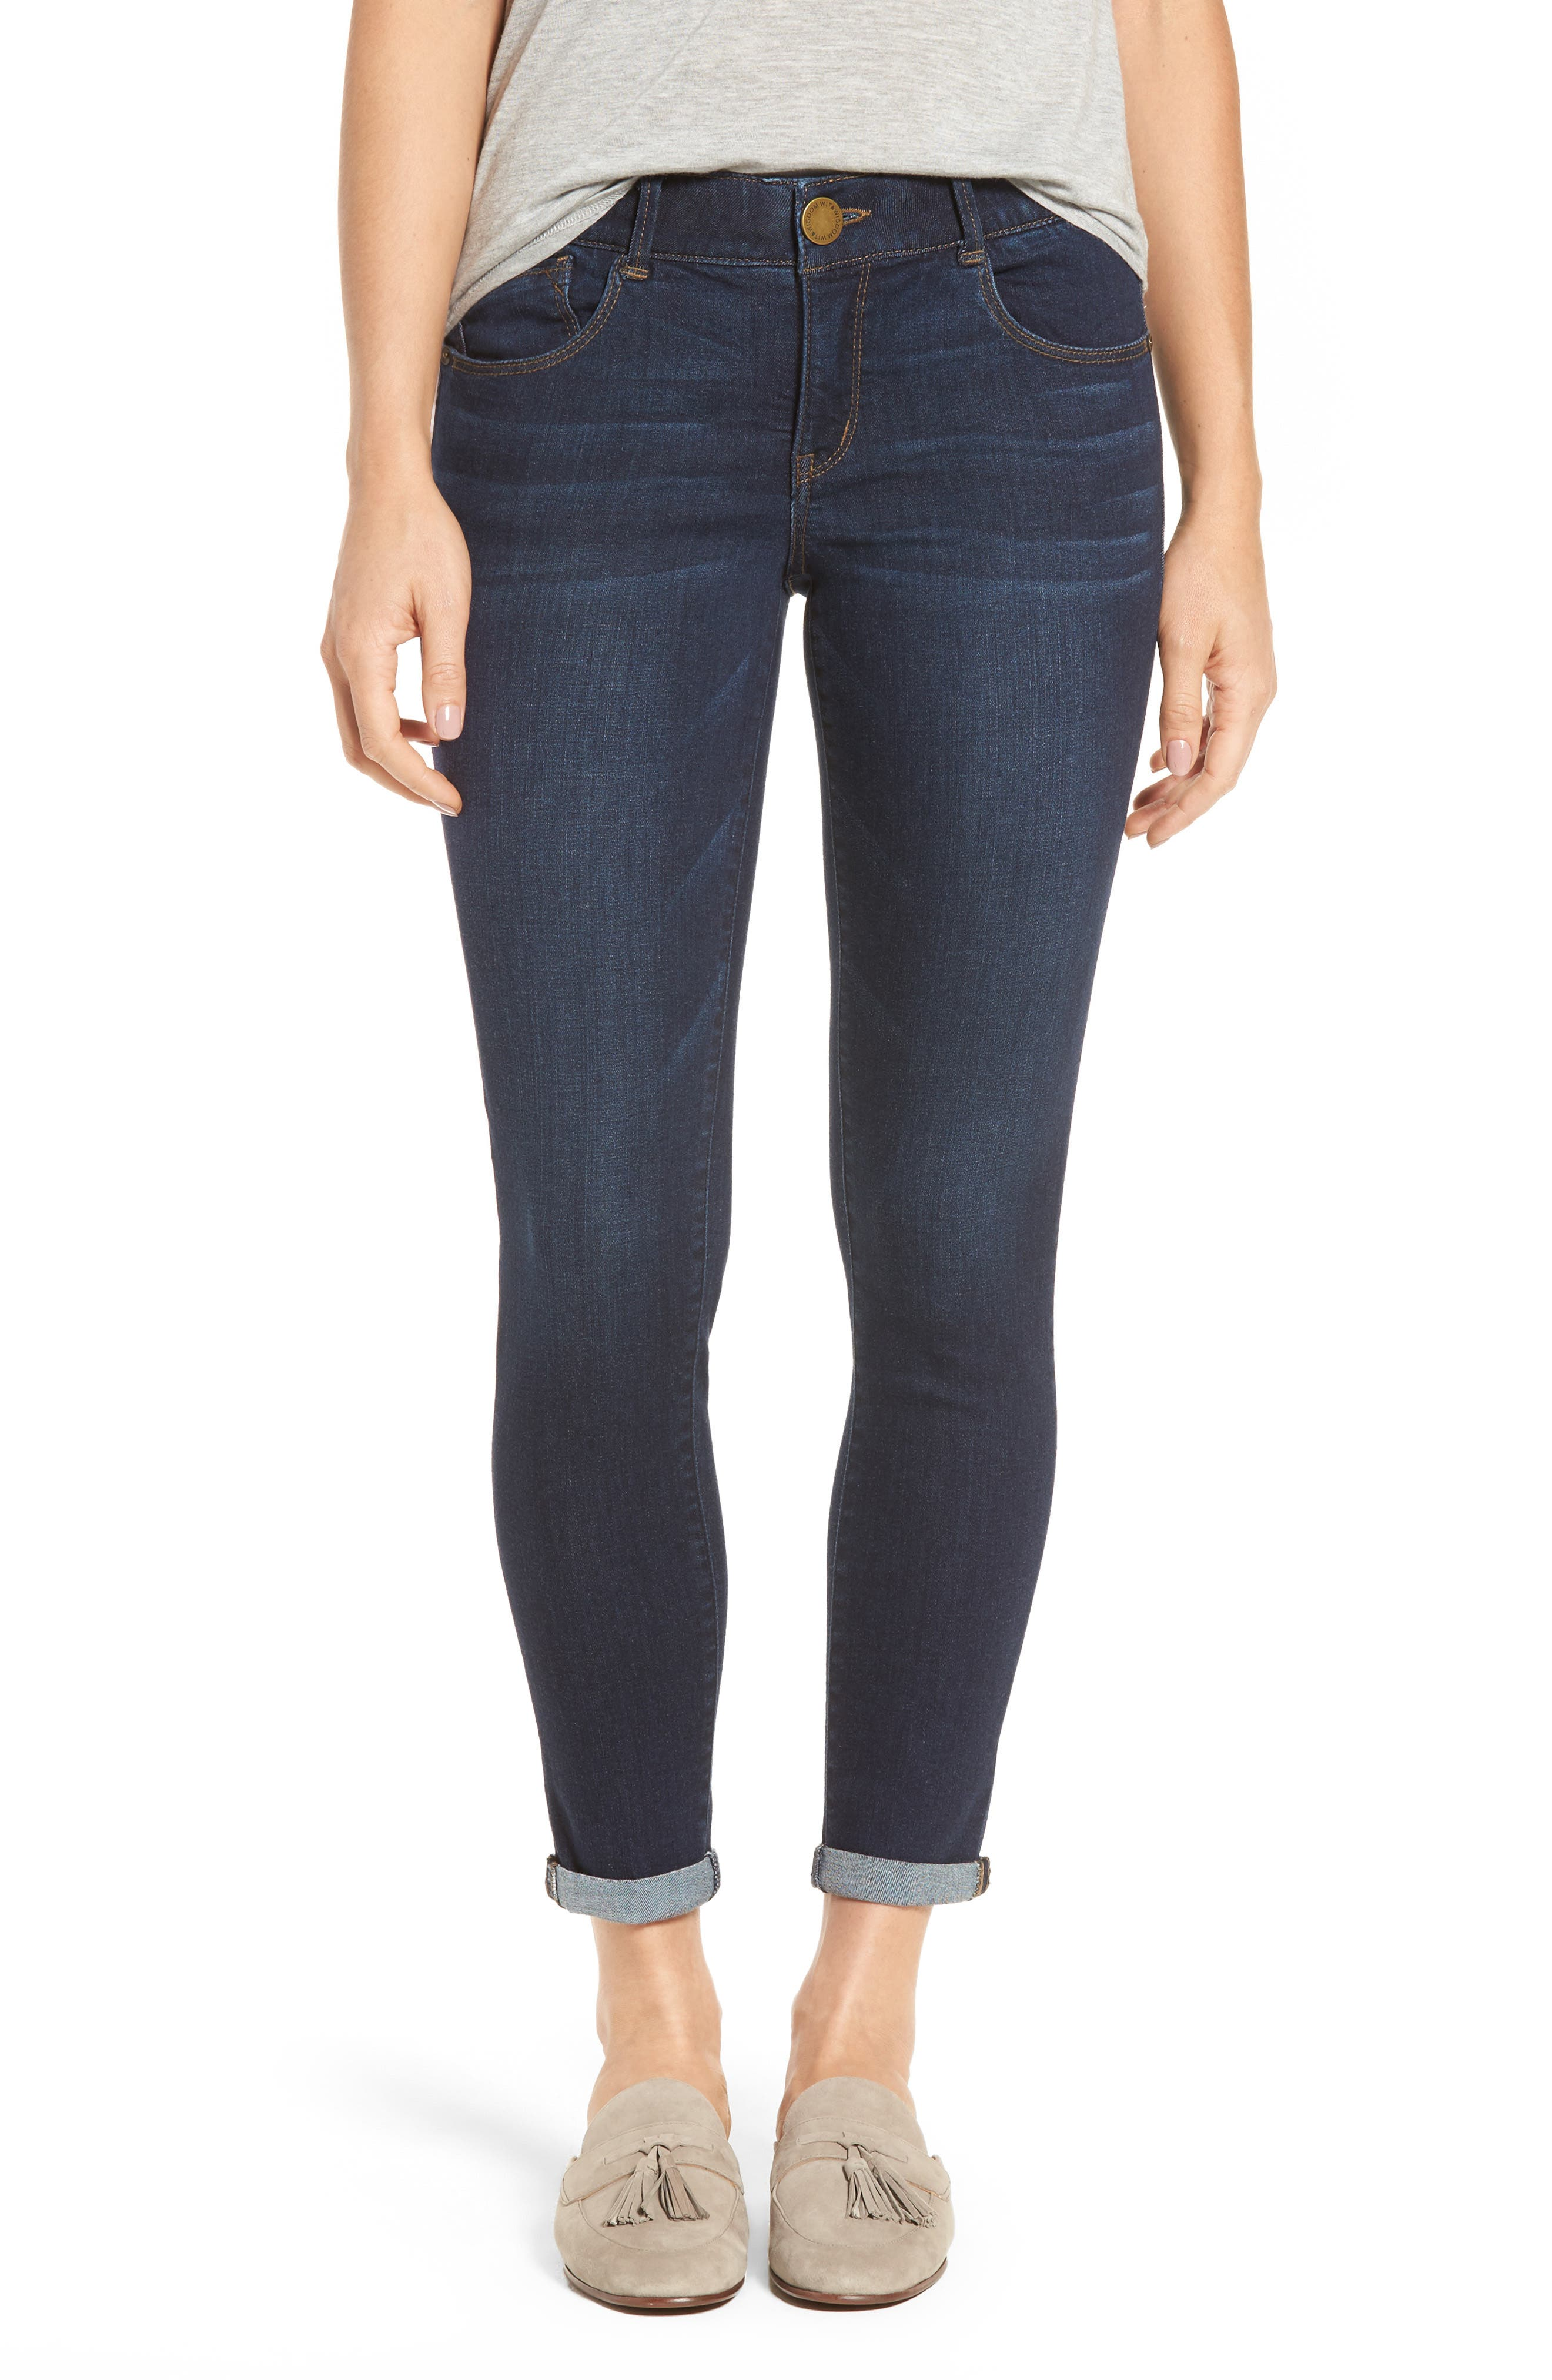 Ab-solution Boyfriend Ankle Jeans,                         Main,                         color, Indigo